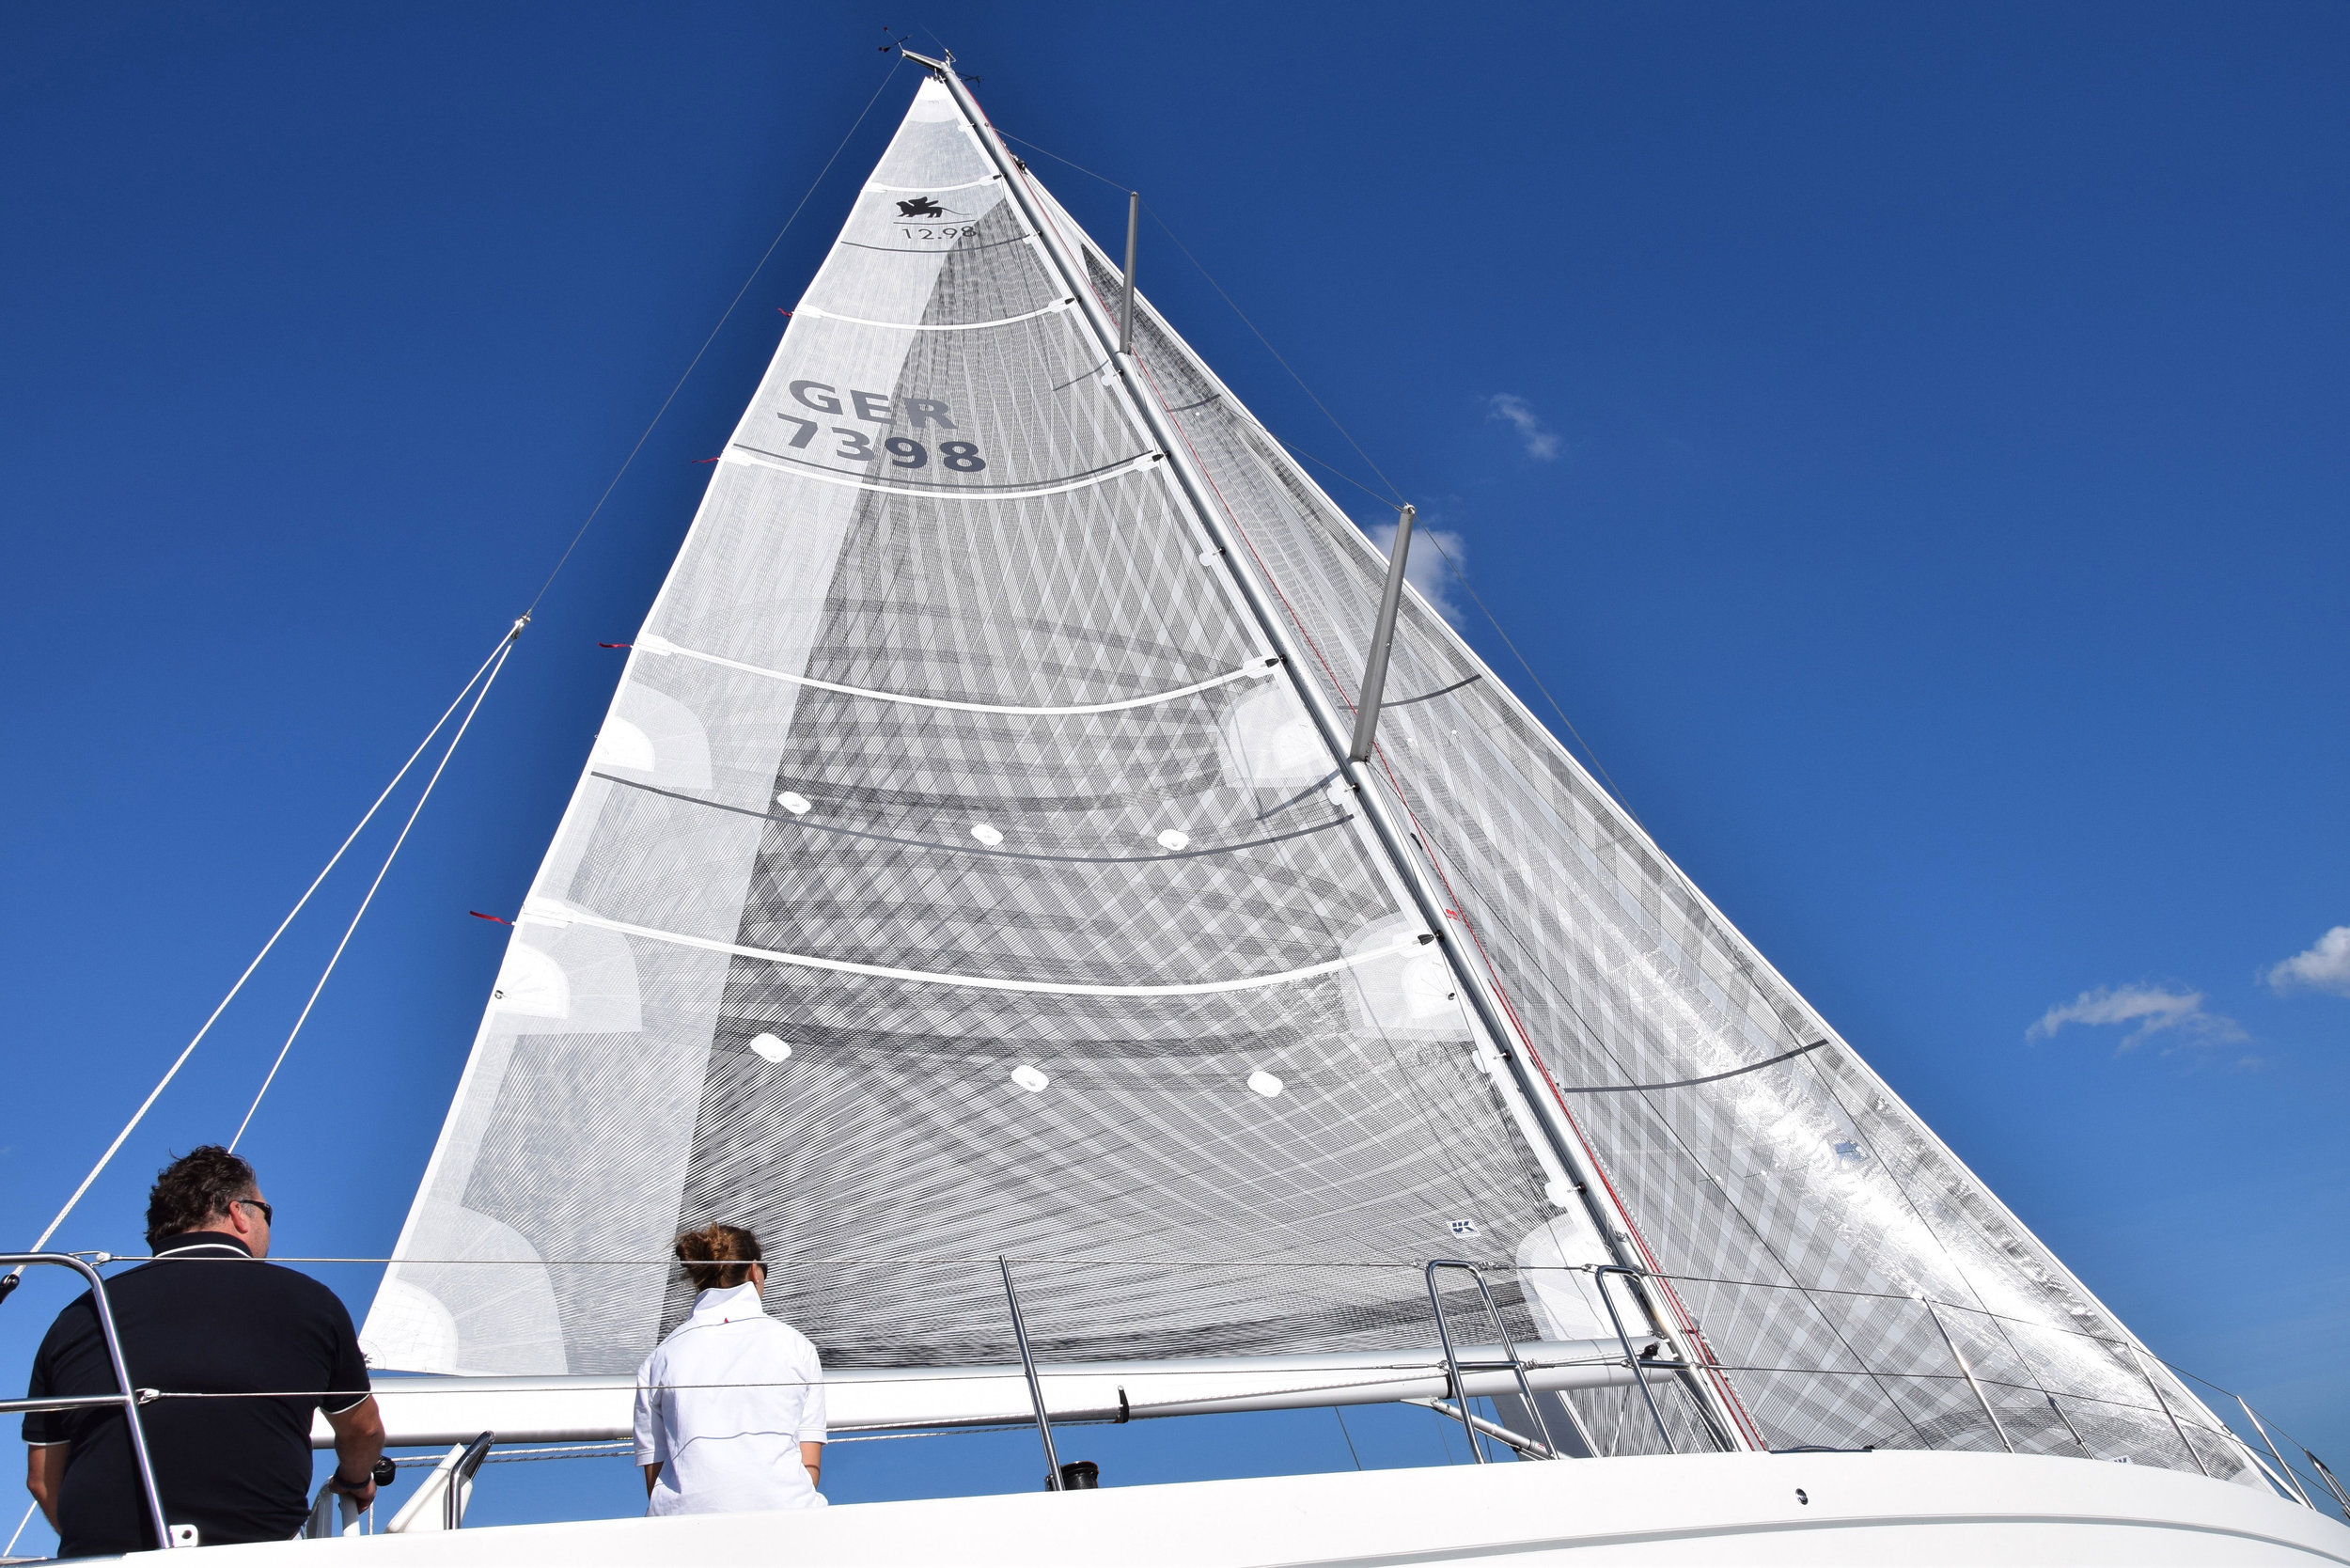 An Italia 12.98 with X-Drive carbon full-batten mainsail and roller/furling genoa. The base laminate has a white taffeta on the side opposite the fibers, while the main has taffeta applied over the fibers on the leech for extra durability.